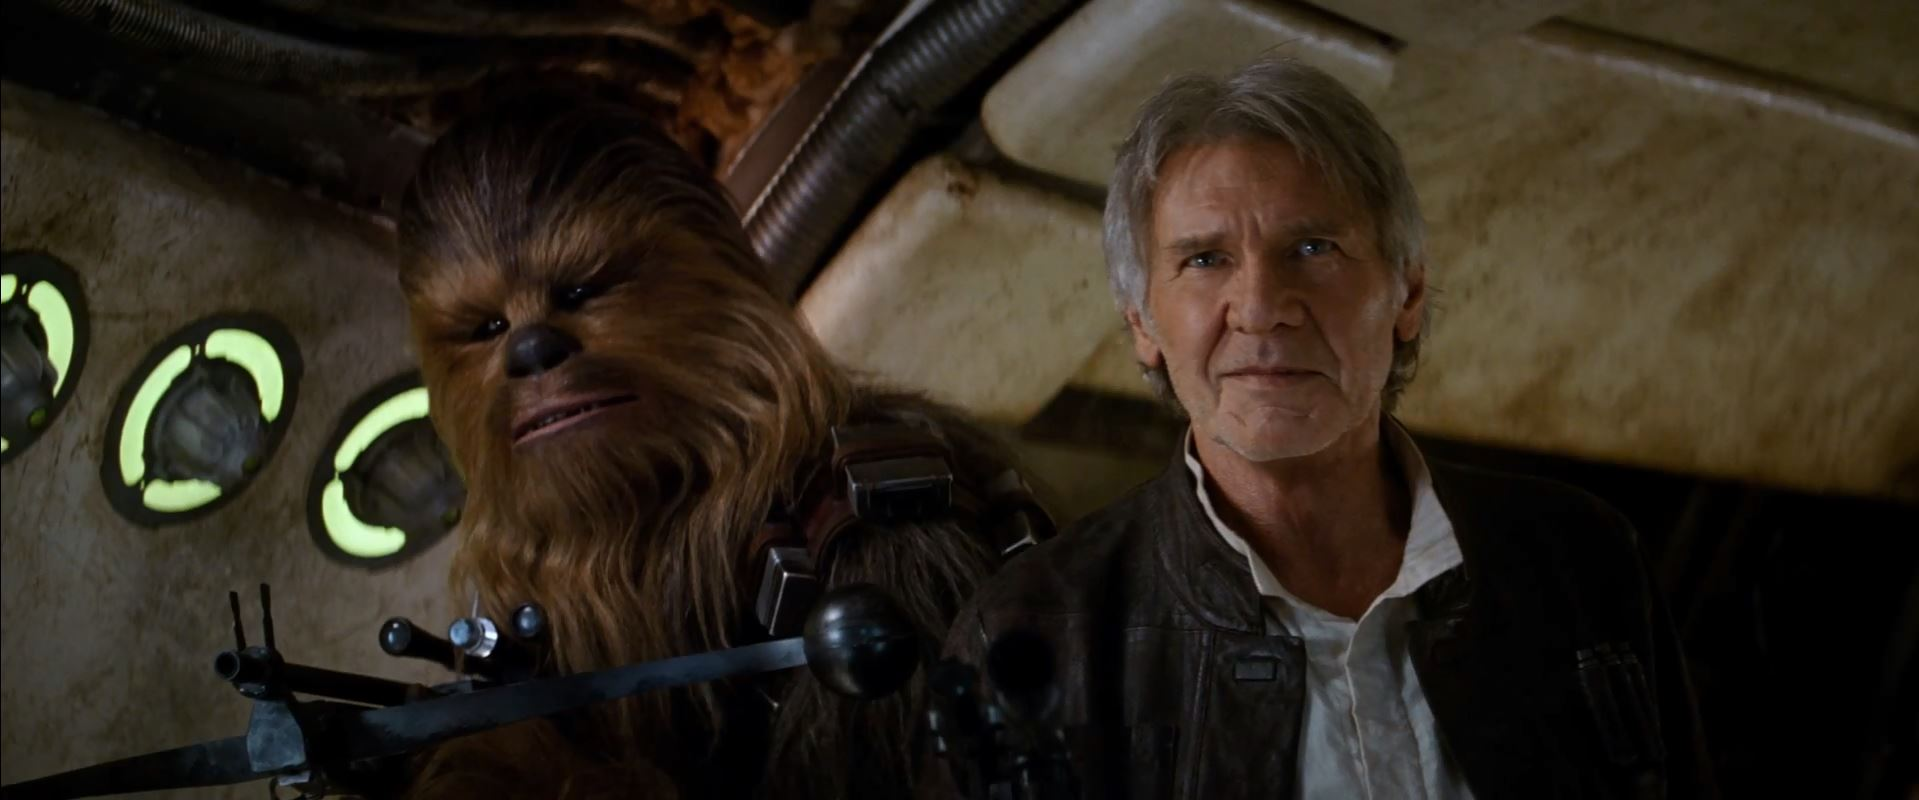 Harrison Ford as Han Solo and Chewbacca. New Star Wars The Force Awakens Trailer Released!